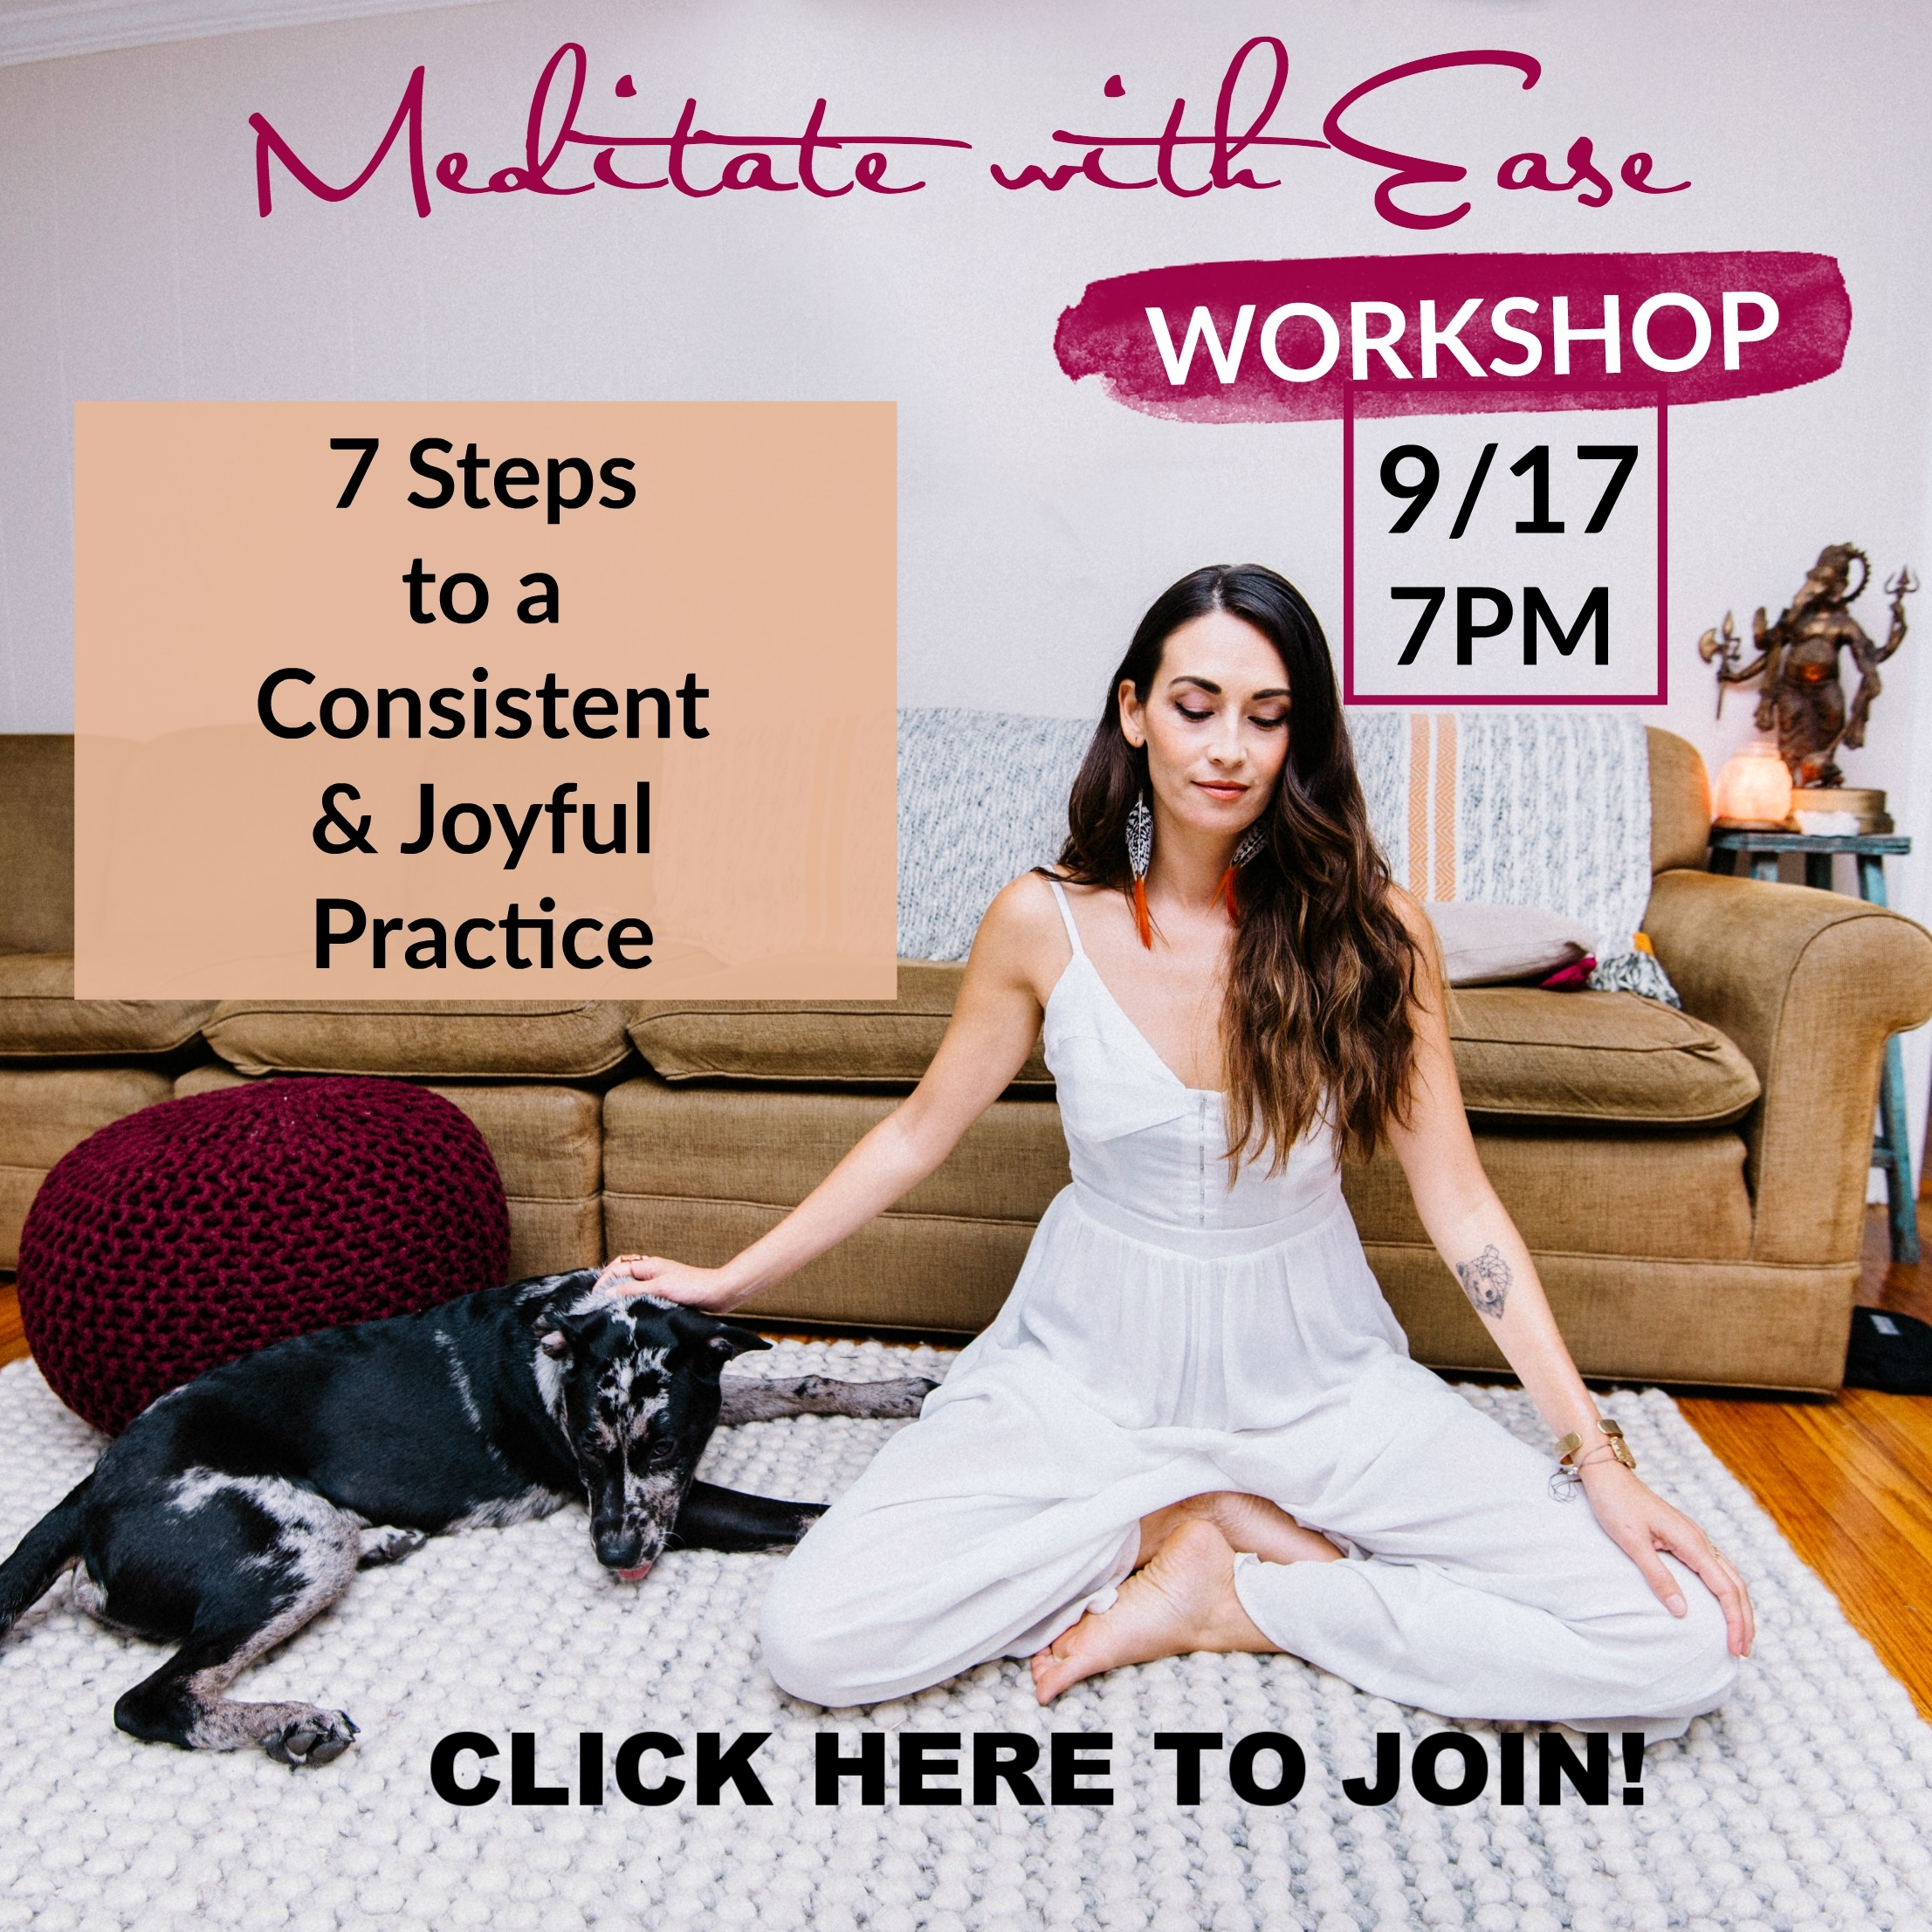 CLICK HERE TO JOIN THE LIVE WORKSHOP!